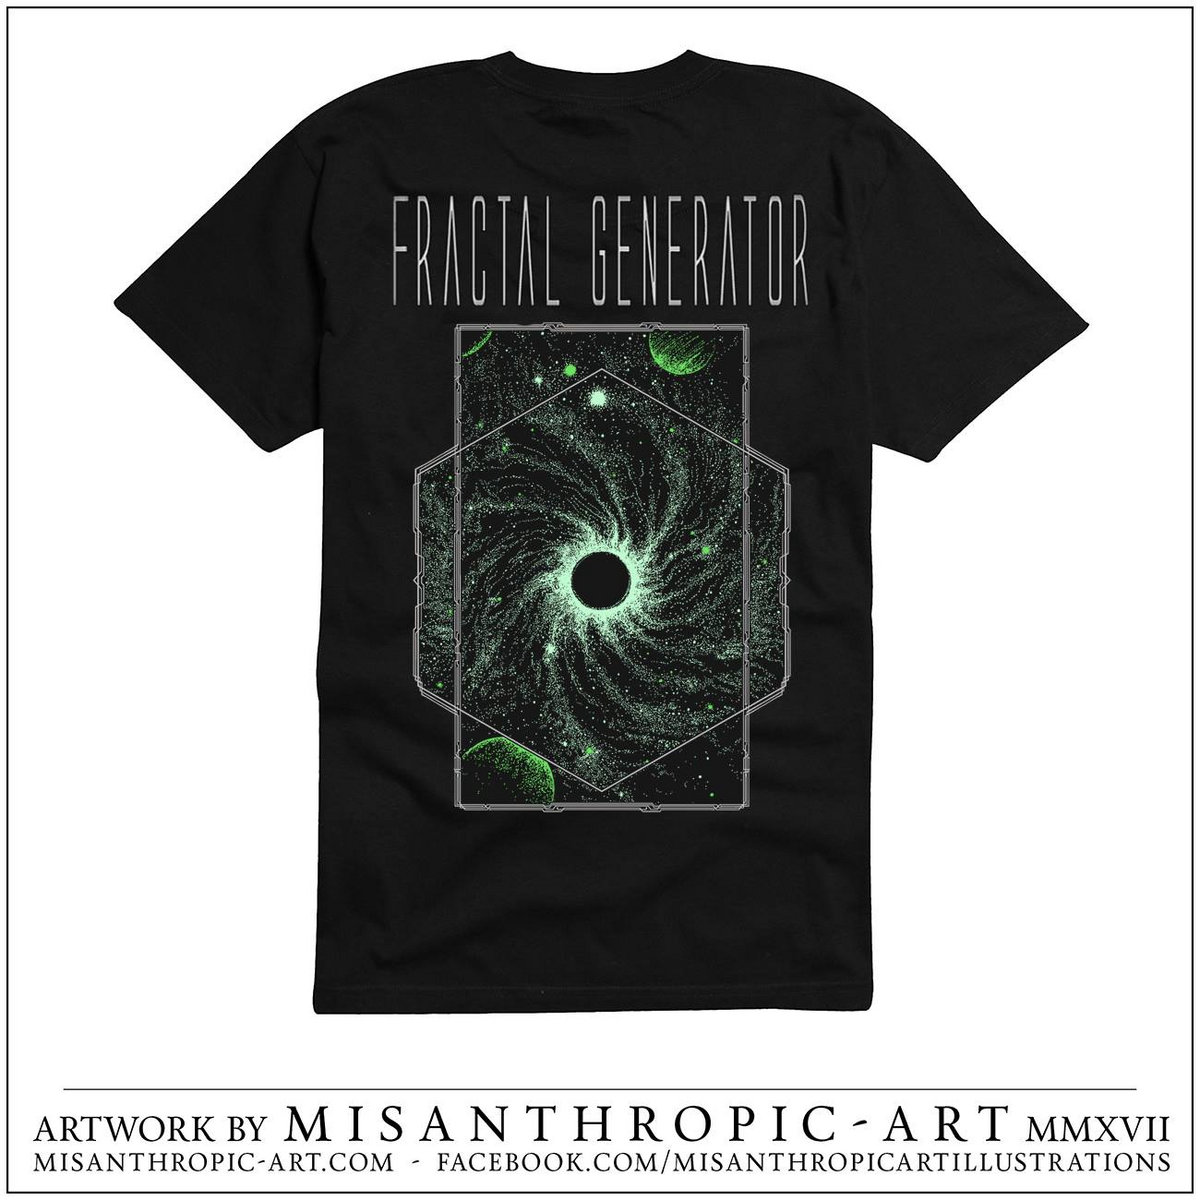 Shirt design software download free - This Bundle Includes Apotheosynthesis On Cd And The Galaxy Design T Shitrt Includes Unlimited Streaming Of Apotheosynthesis Via The Free Bandcamp App